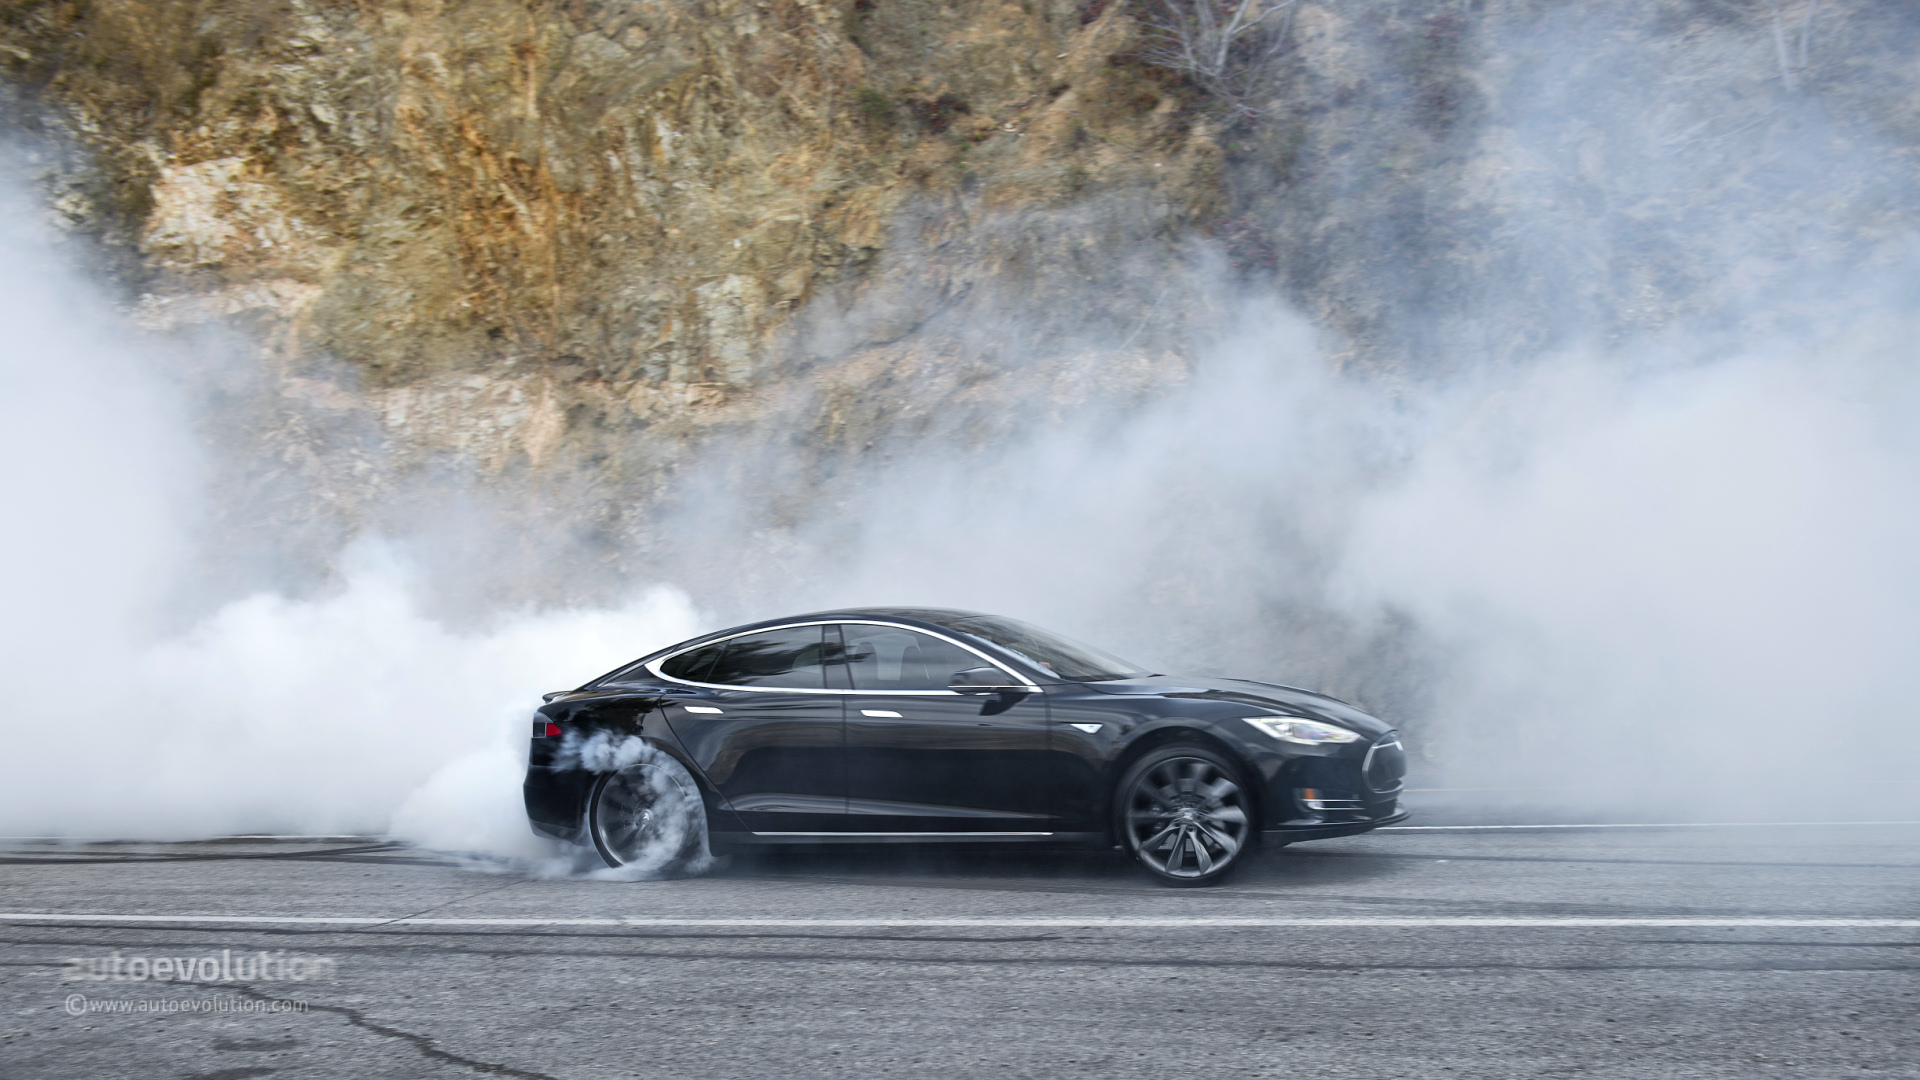 Update Tesla Model S P85d 2 8 Second 0 To 60 Mph Launch